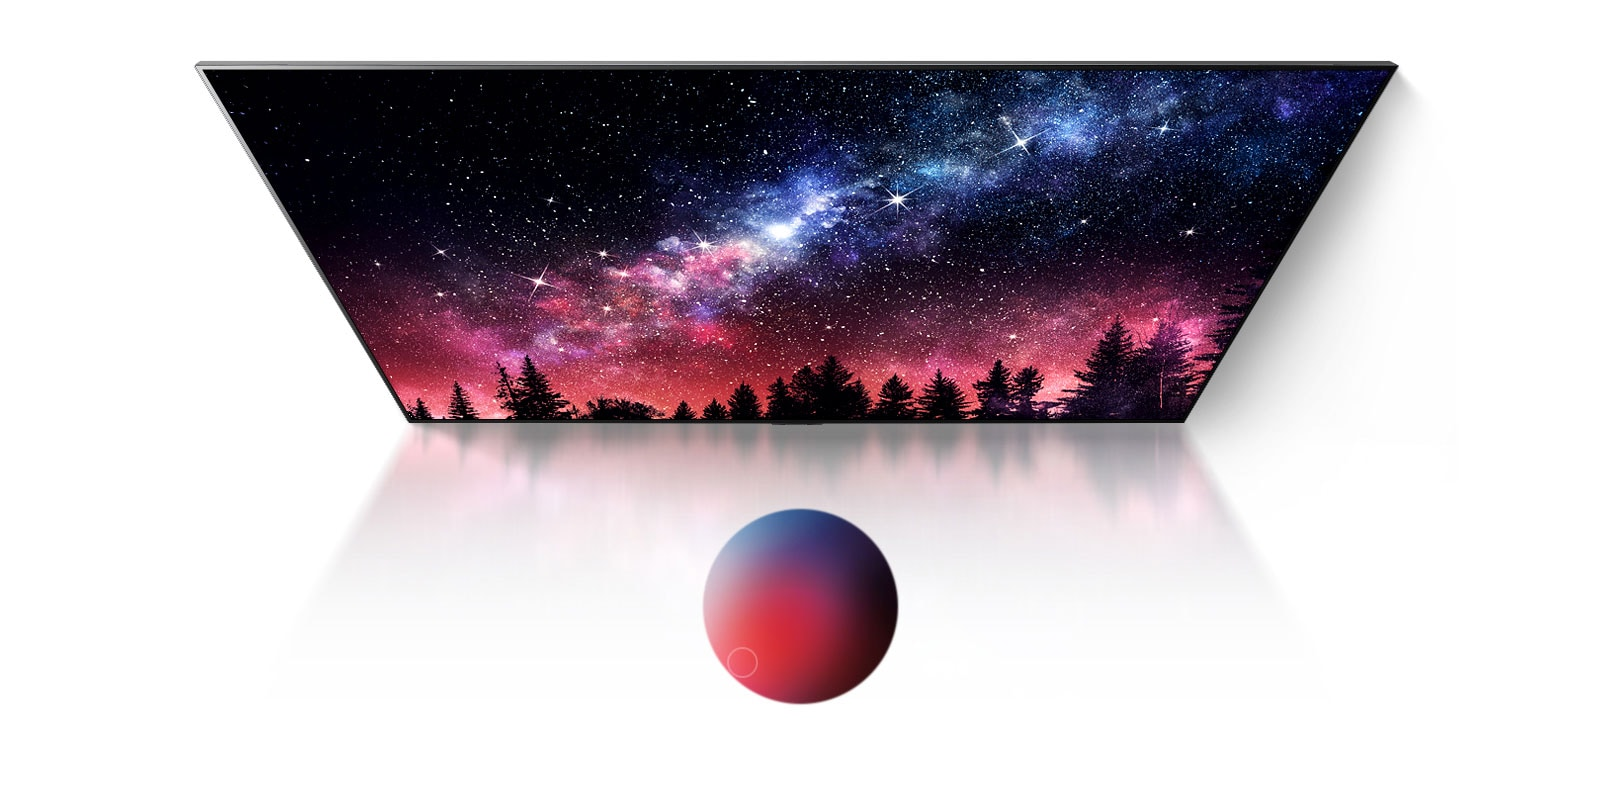 A TV screen showing milky way, blue sky, and explosion of colorful dust with great quality(play the video)